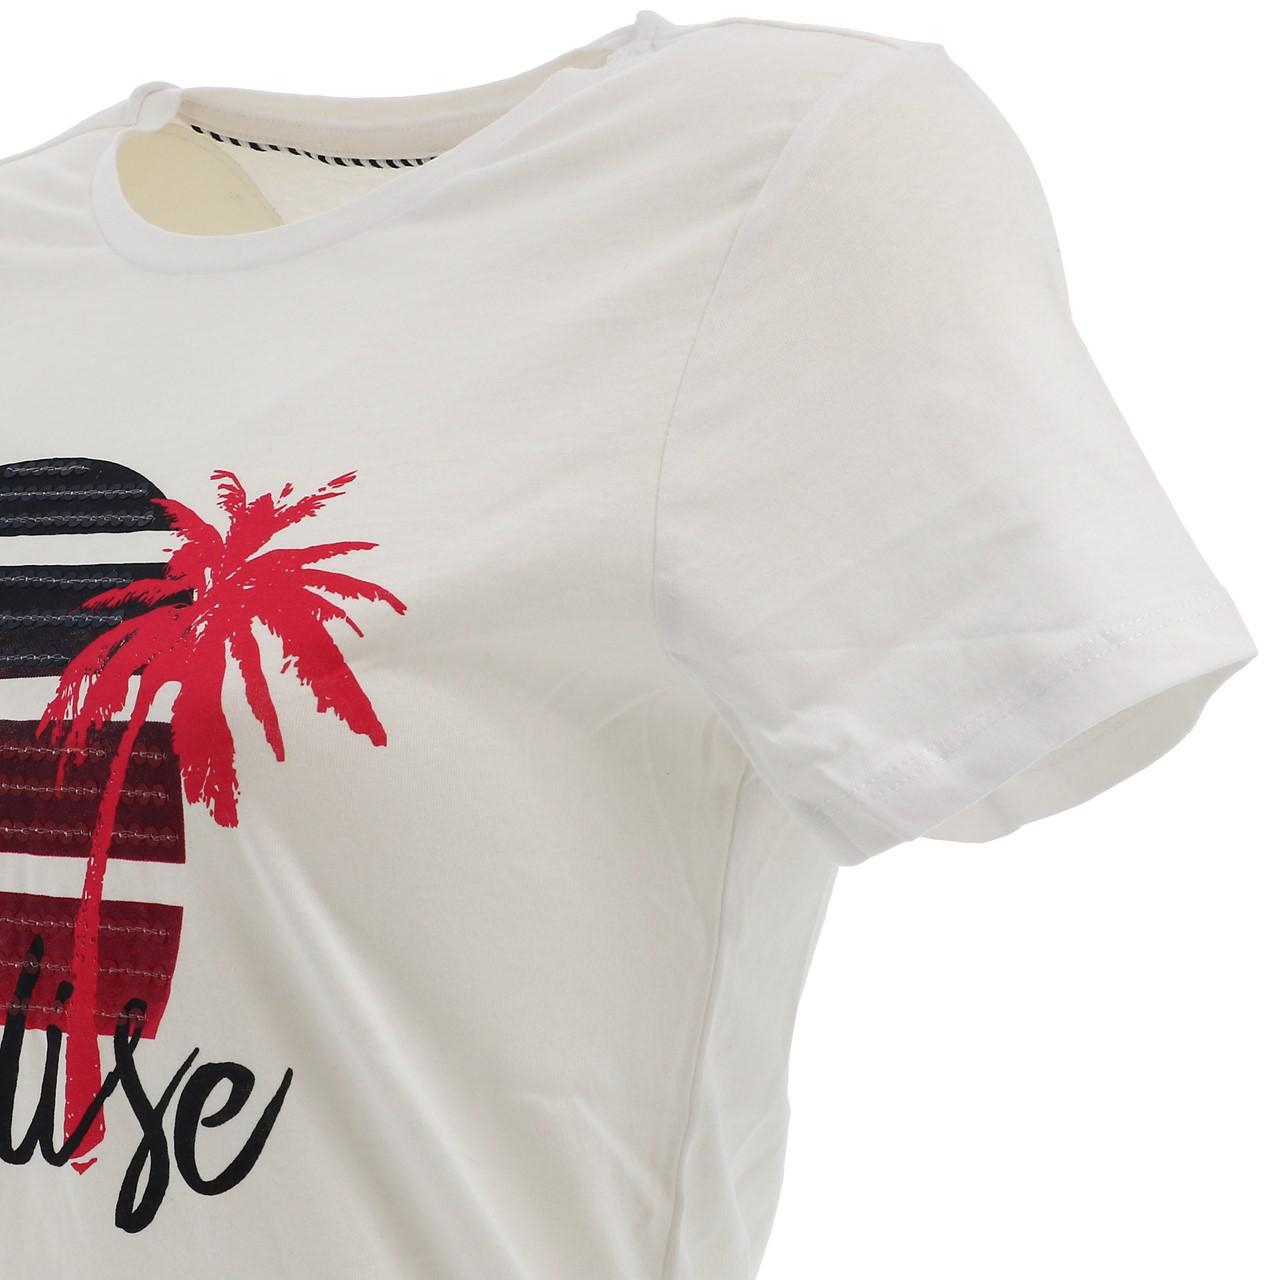 Tee-shirt-manches-courtes-Only-Paradise-white-tee-l-sp2-Blanc-17500-Neuf miniature 3